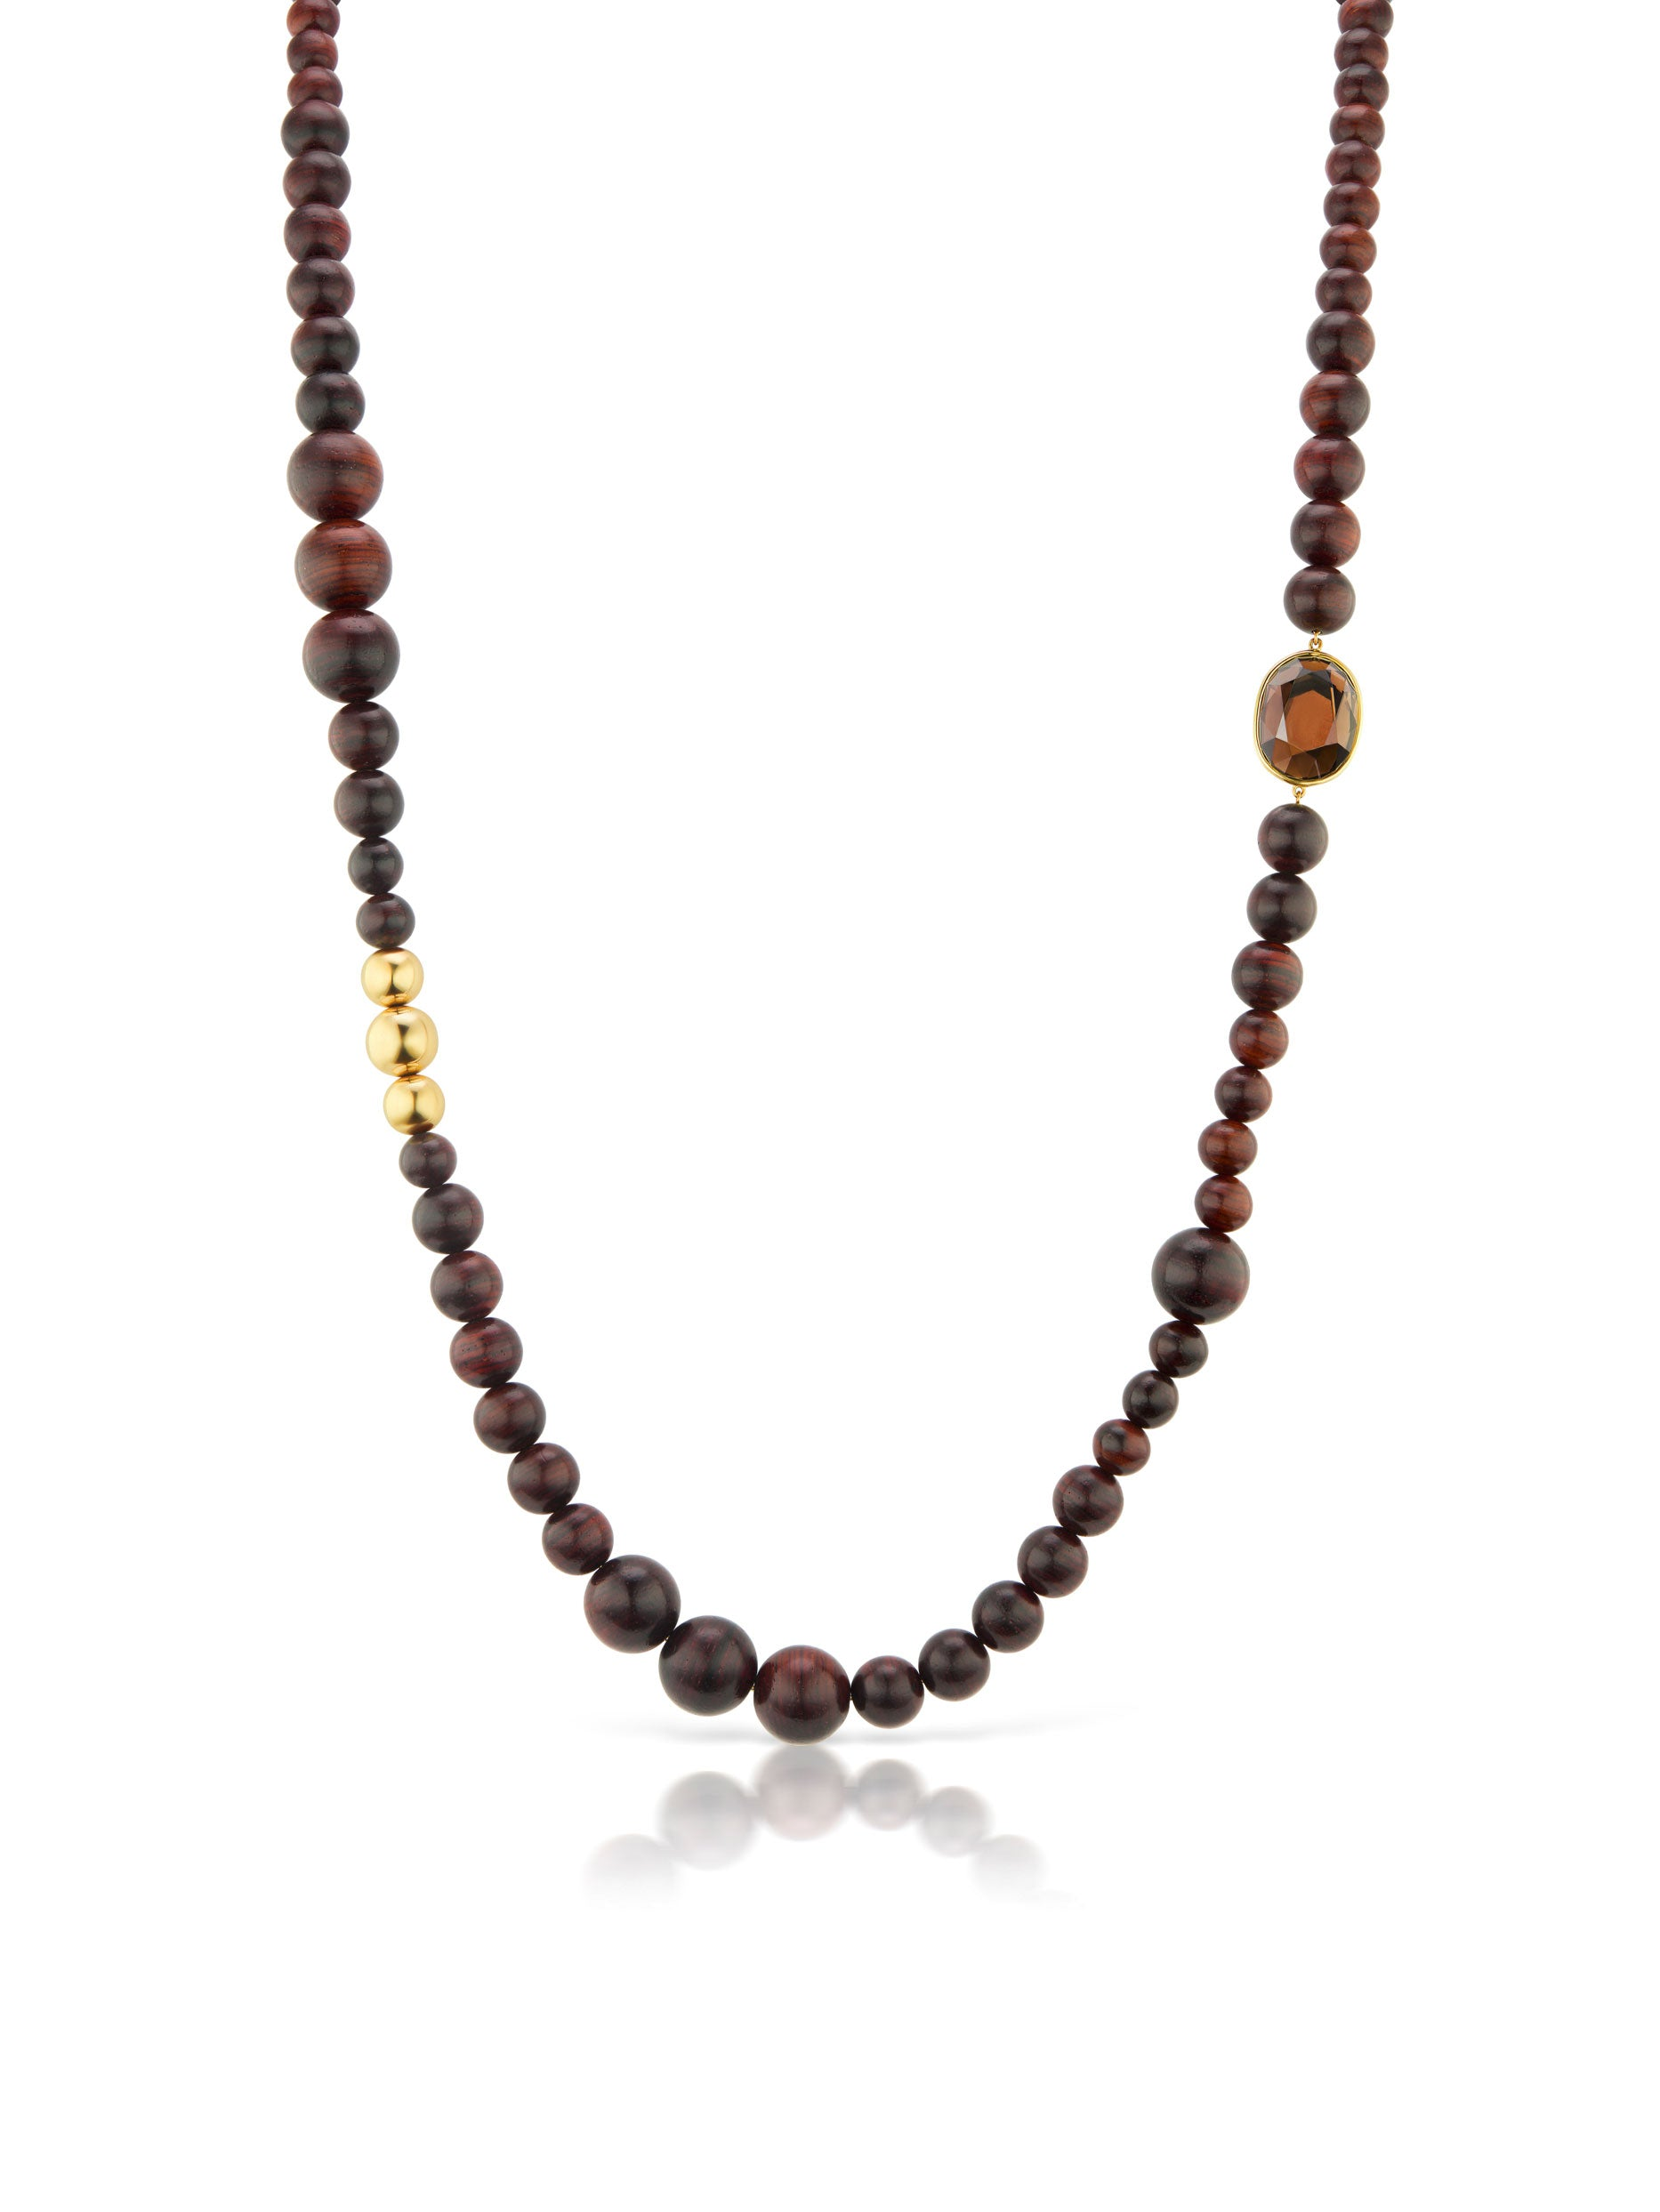 Voyager Wood Bead Necklace with Smokey Topaz